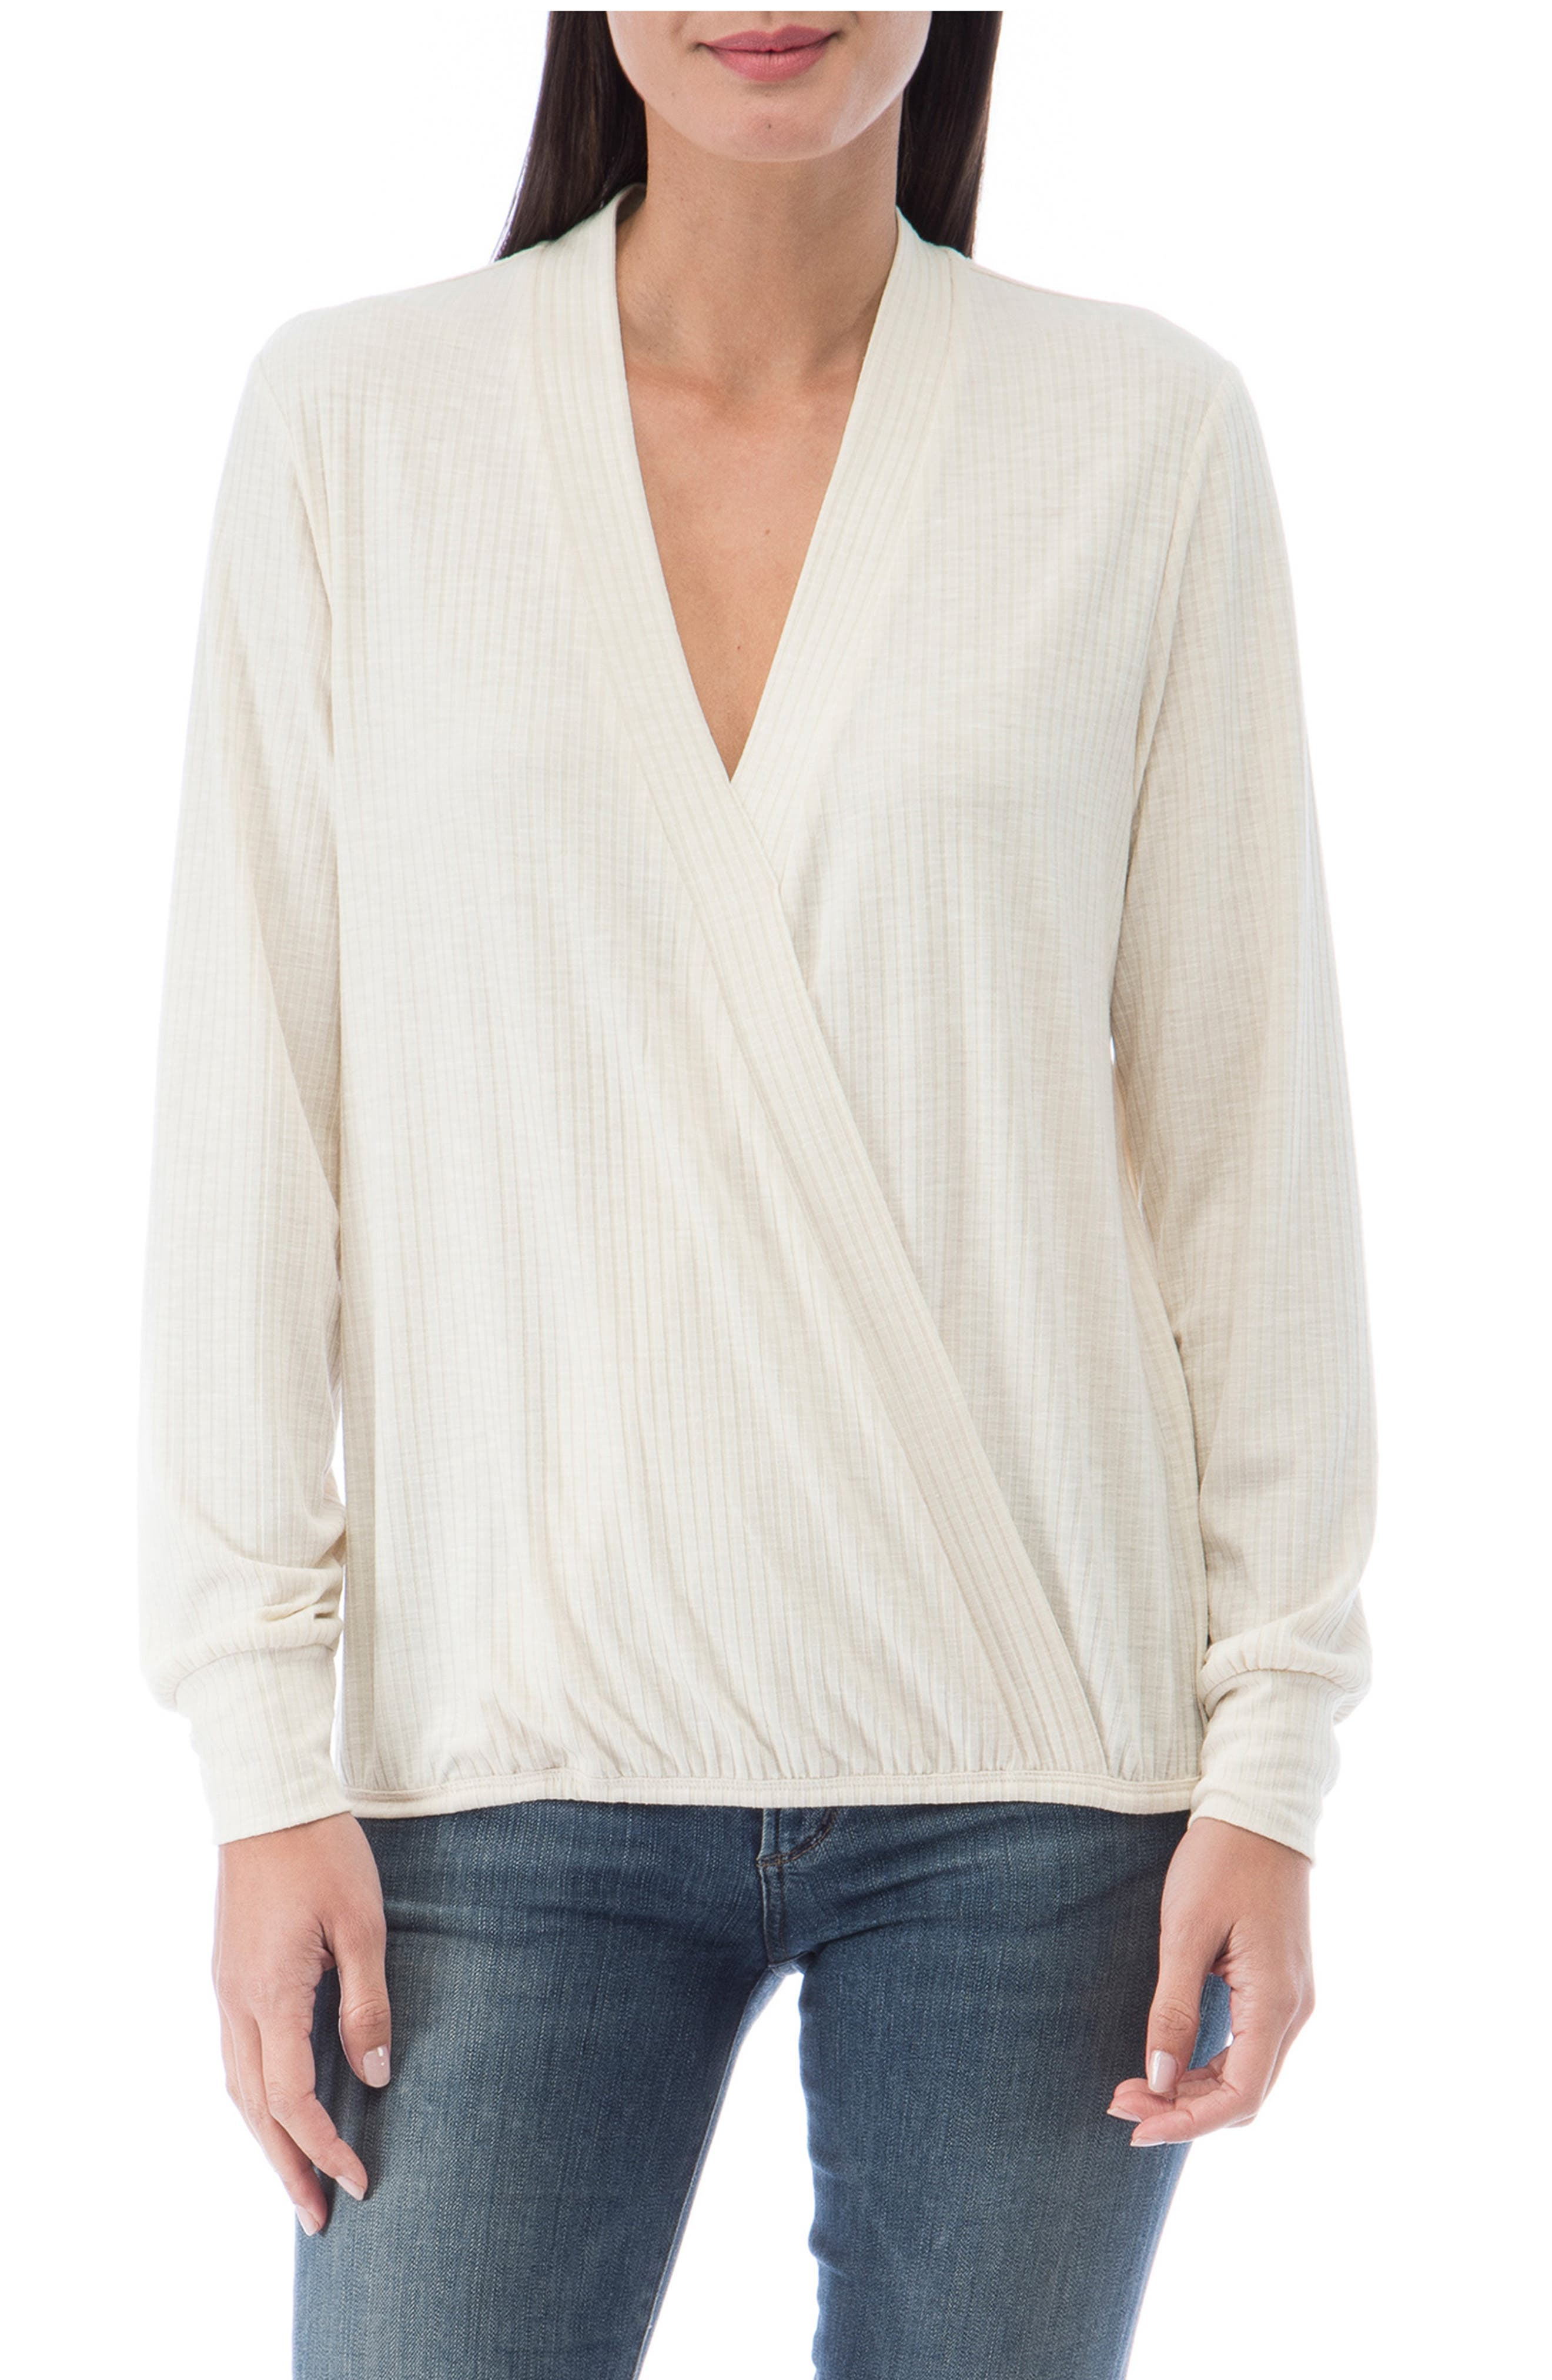 A heathered rib amplifies the coziness of this versatile top with a wrap-inspired silhouette. Style Name: Bobeau Mavis Surplice Top. Style Number: 6092582. Available in stores.